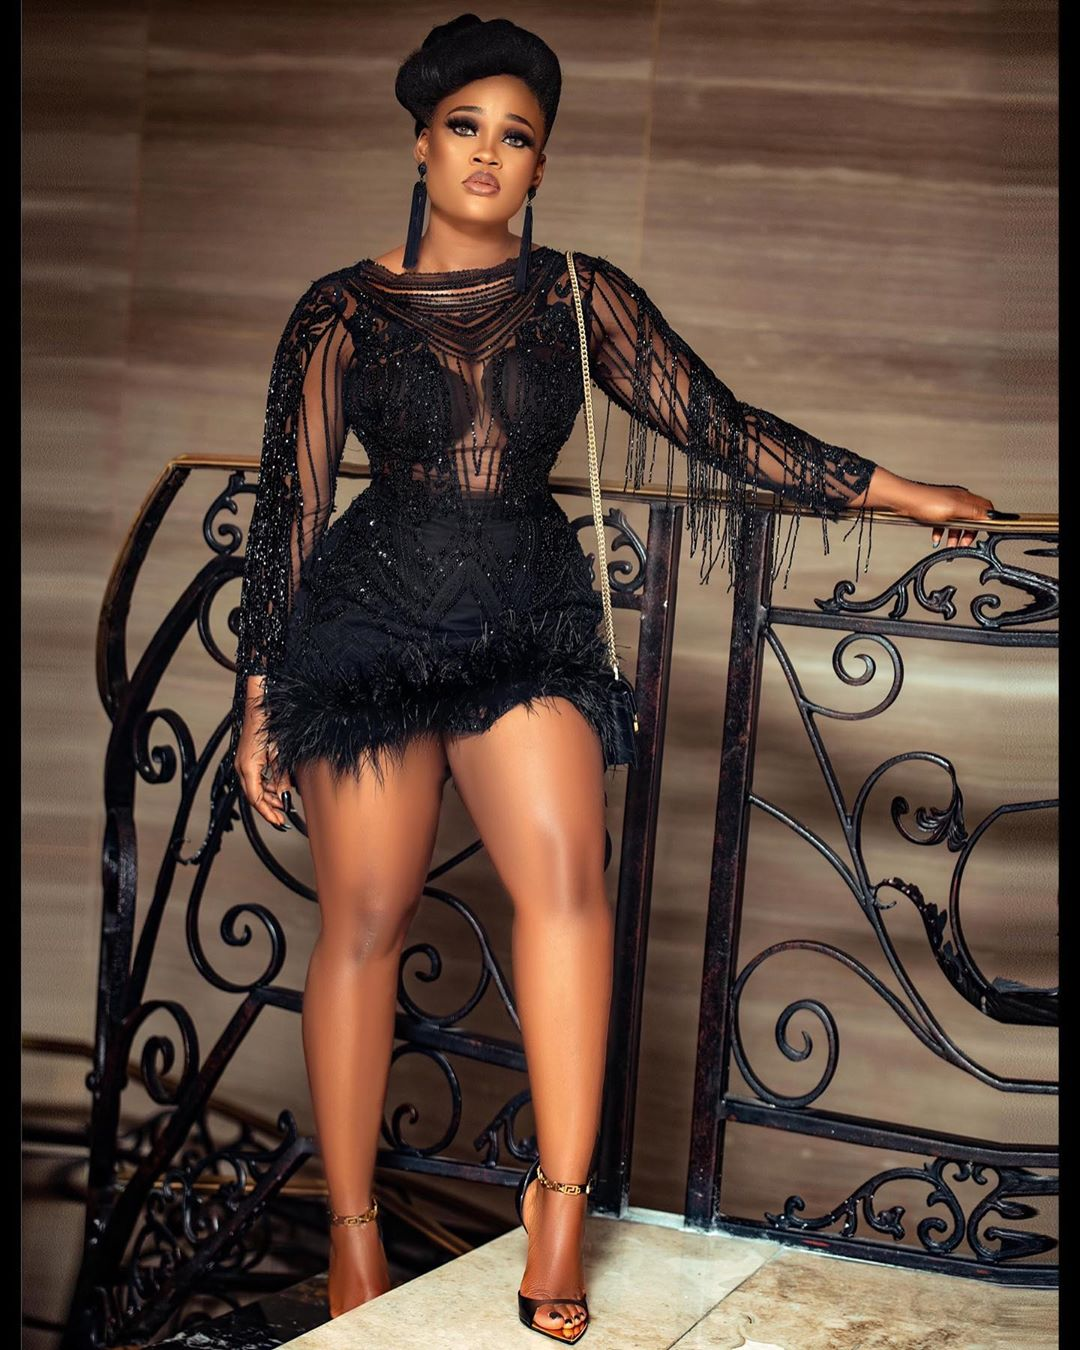 Cynthia Nwadiora Fashionable Look Gets Jaw Dropping